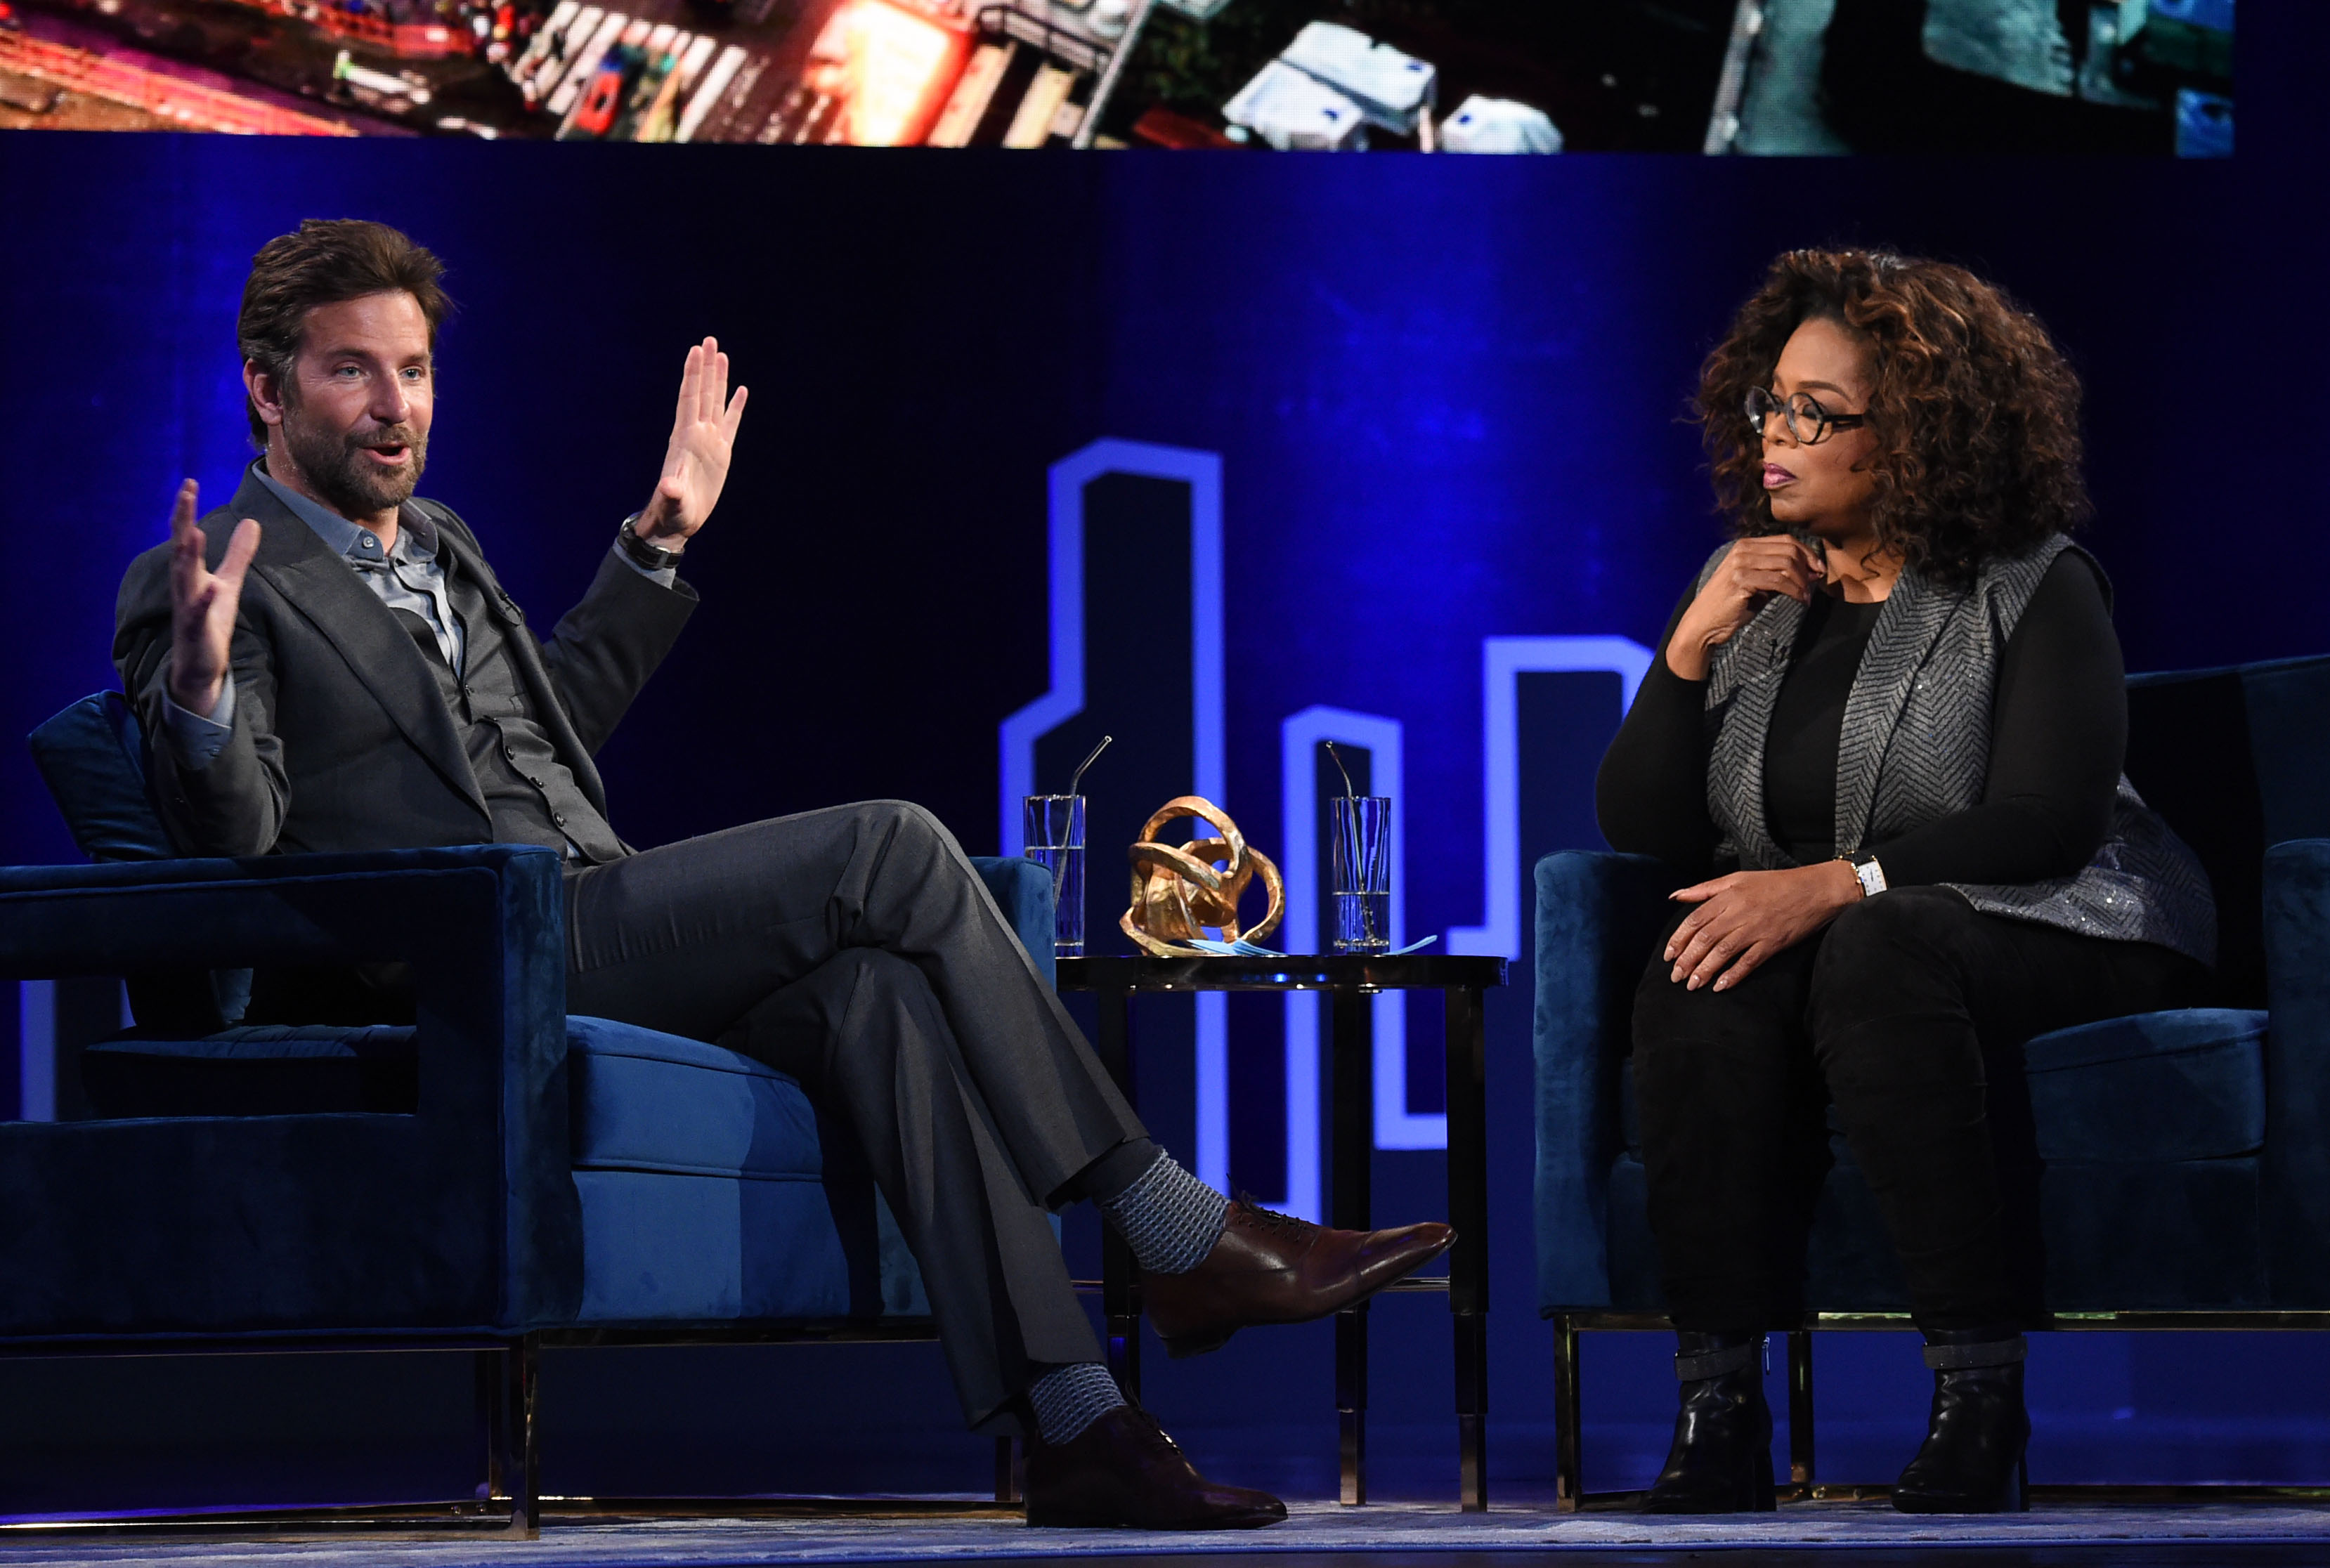 NEW YORK, NEW YORK - FEBRUARY 05: Bradley Cooper and Oprah Winfrey attend Oprah's SuperSoul Conversations at PlayStation Theater on February 05, 2019 in New York City. (Photo by Jamie McCarthy/Getty Images)